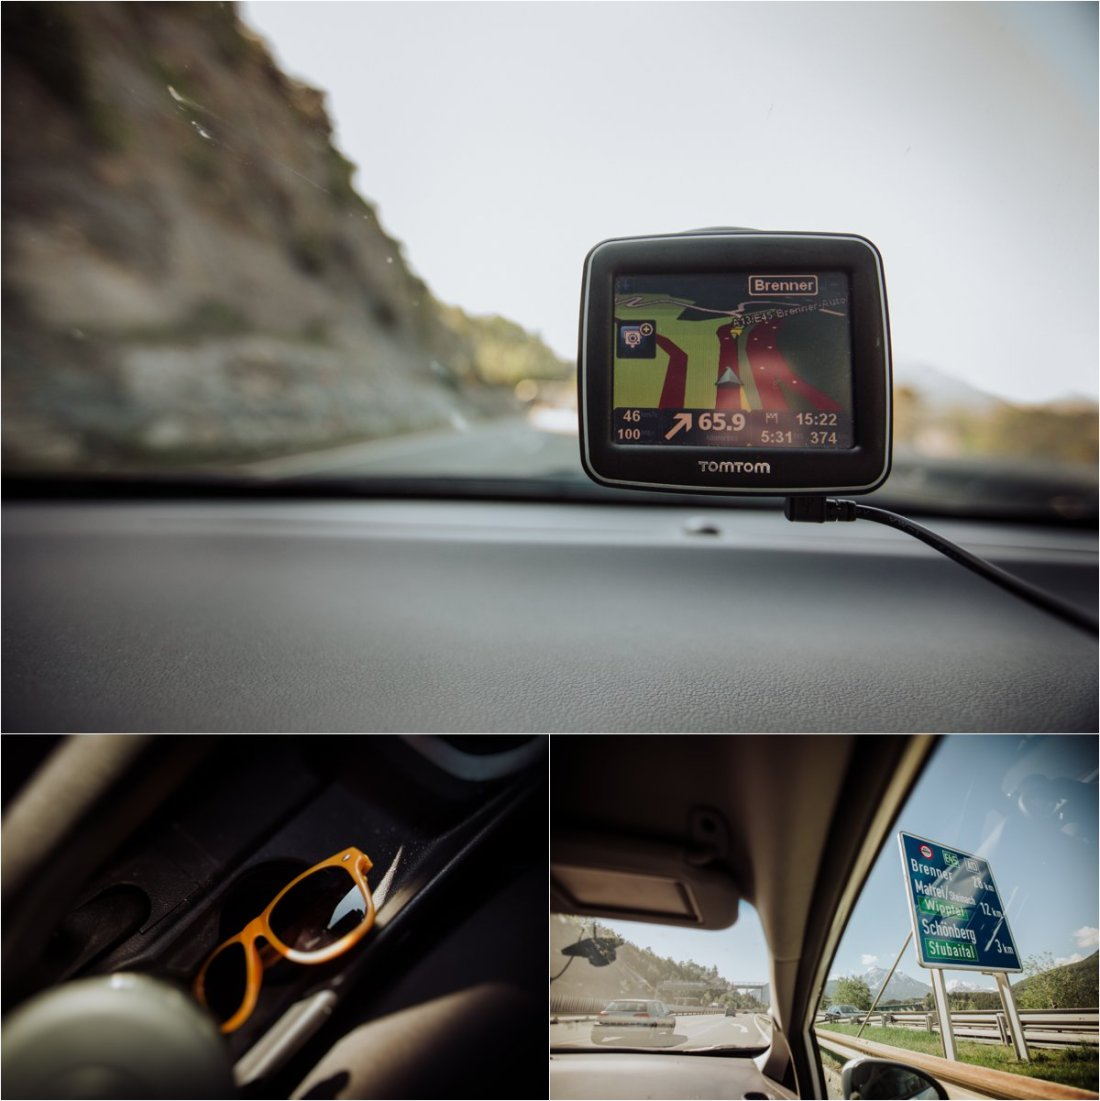 Picture of a GPS in a car